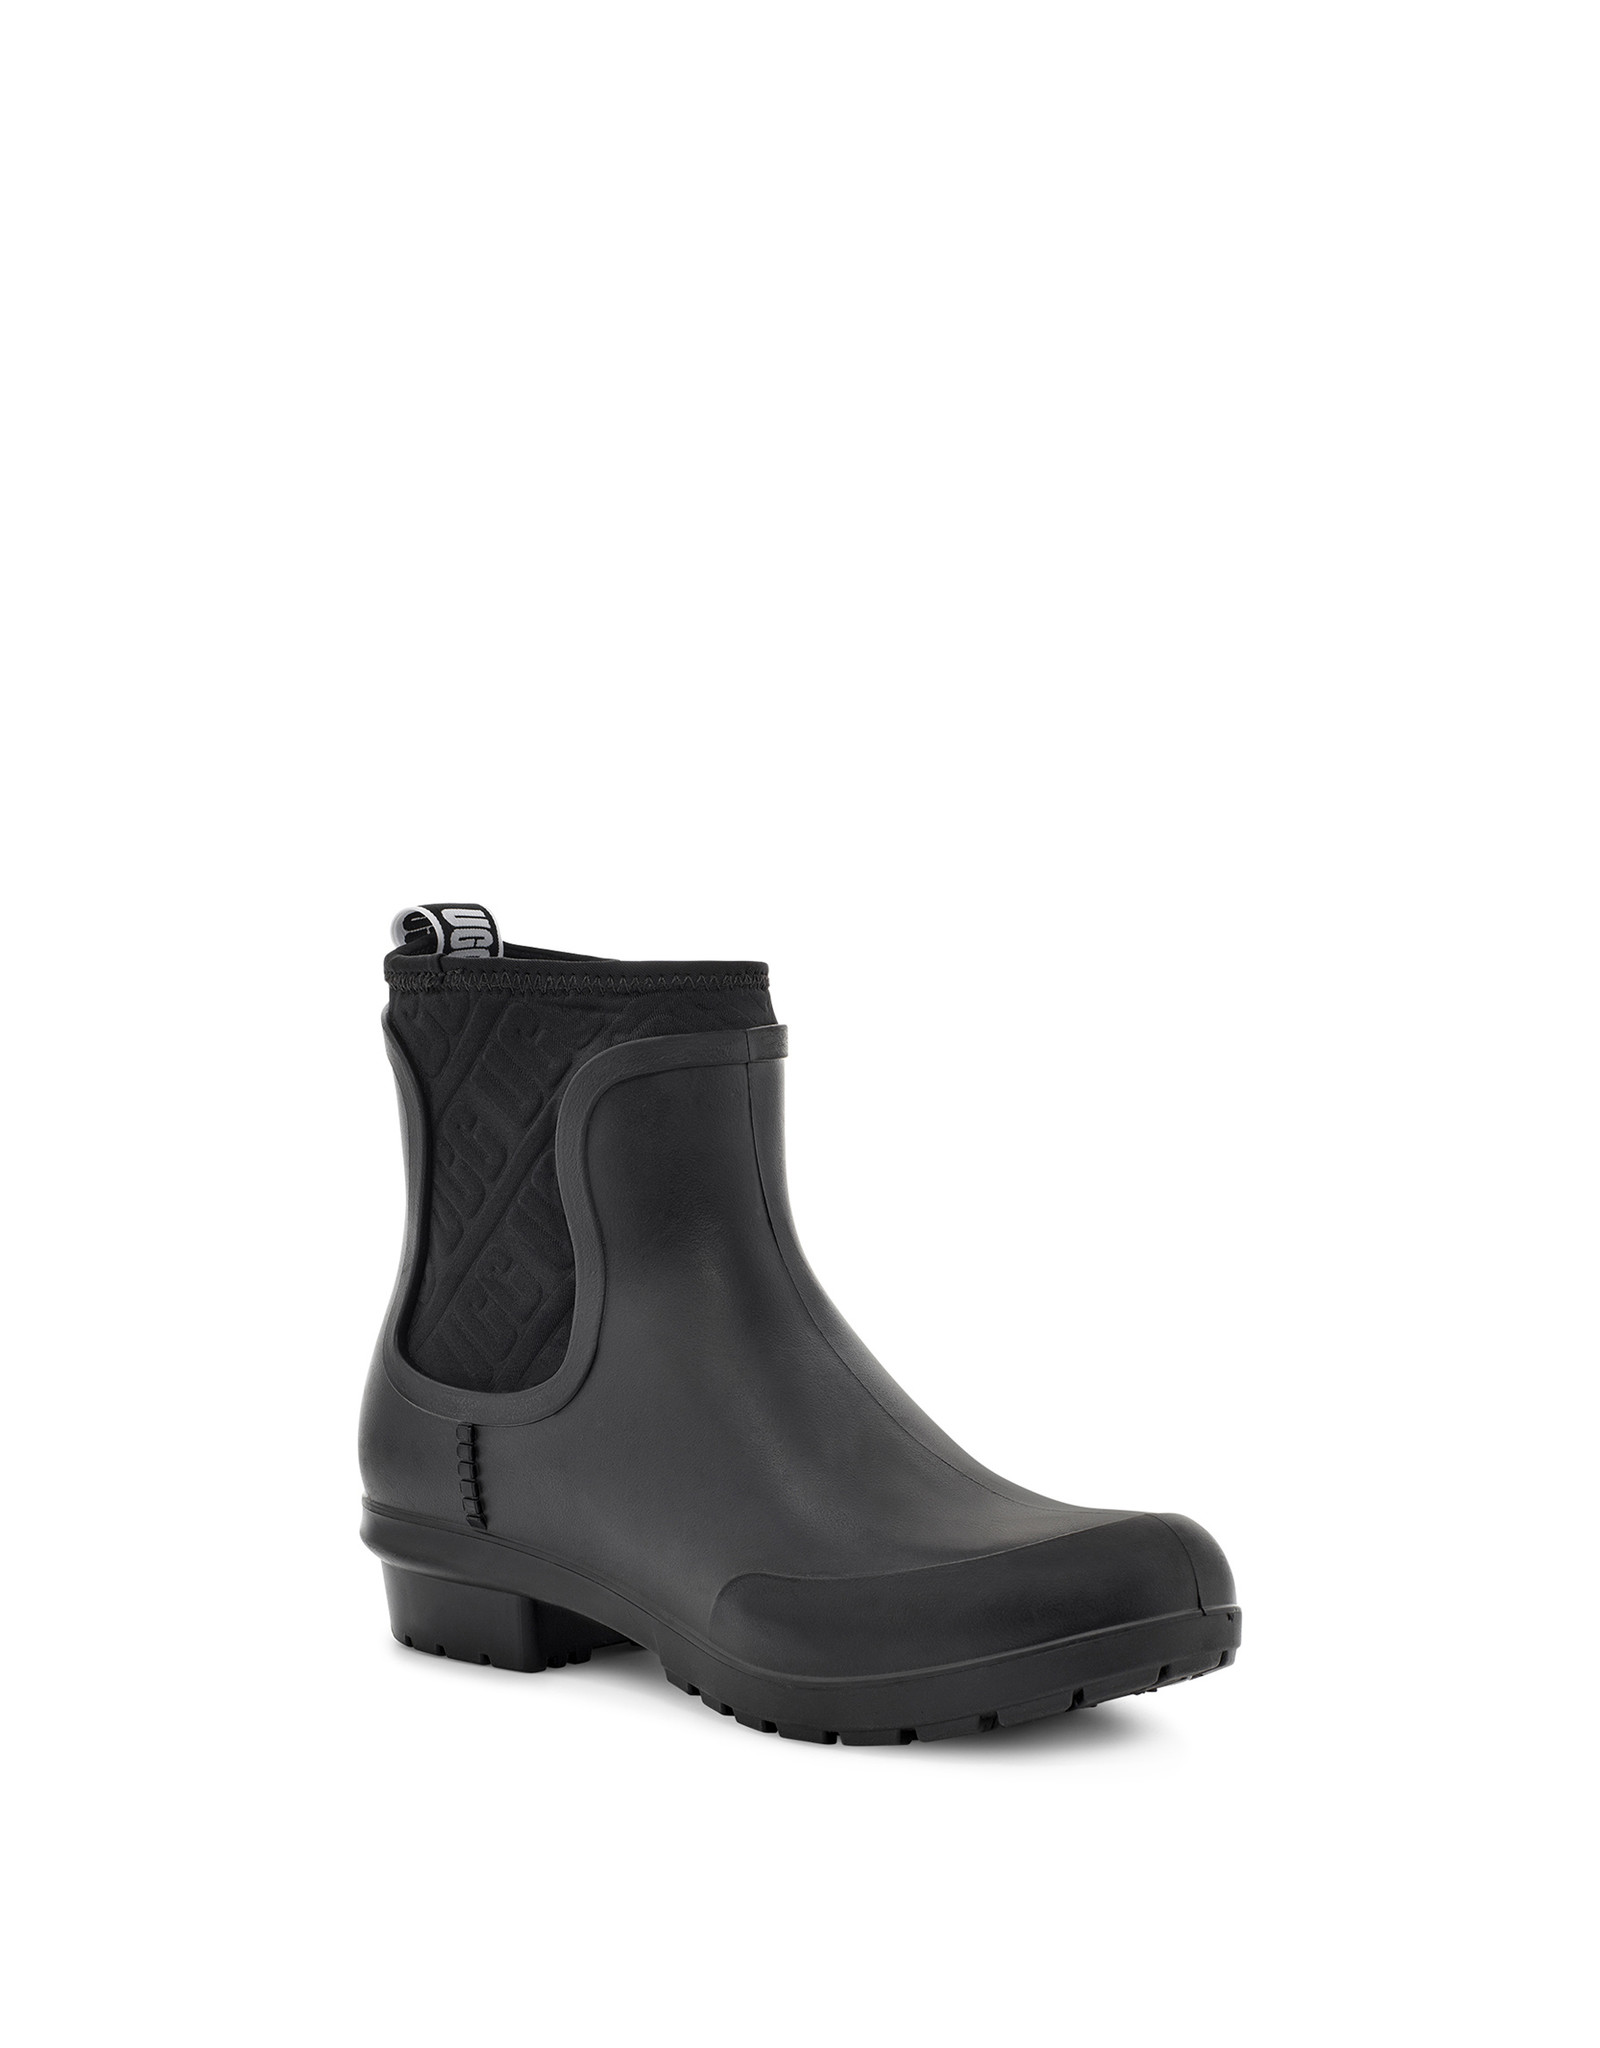 UGG WOMEN'S CHEVONNE-BLACK